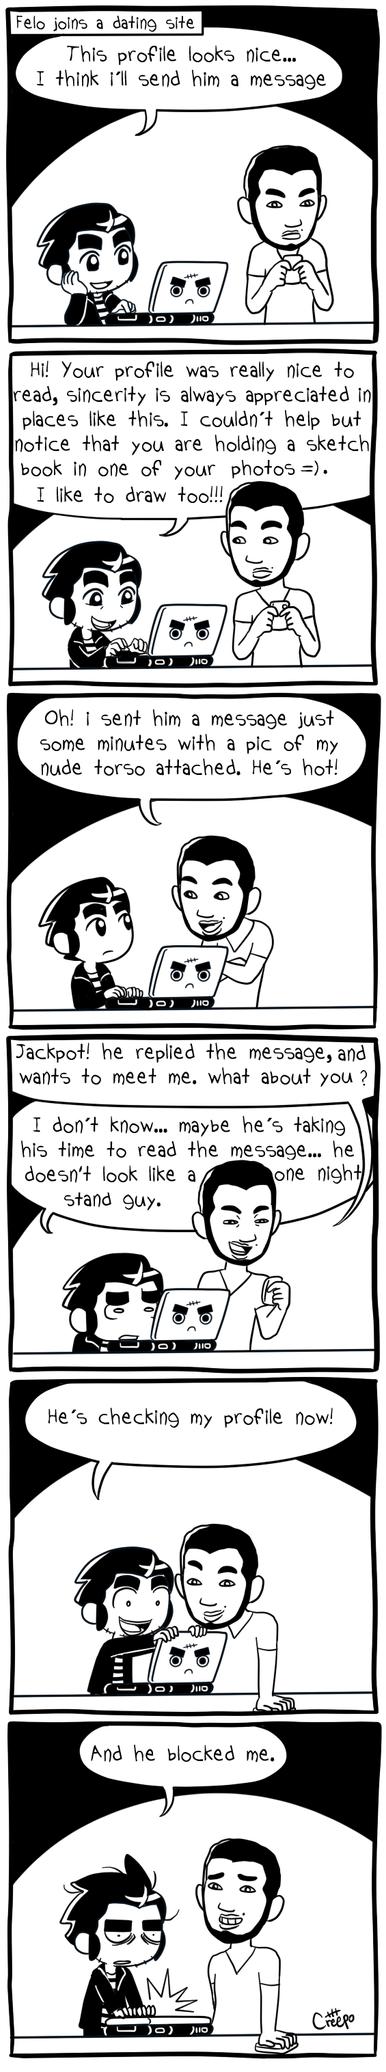 Dating for creeps comic deviantart